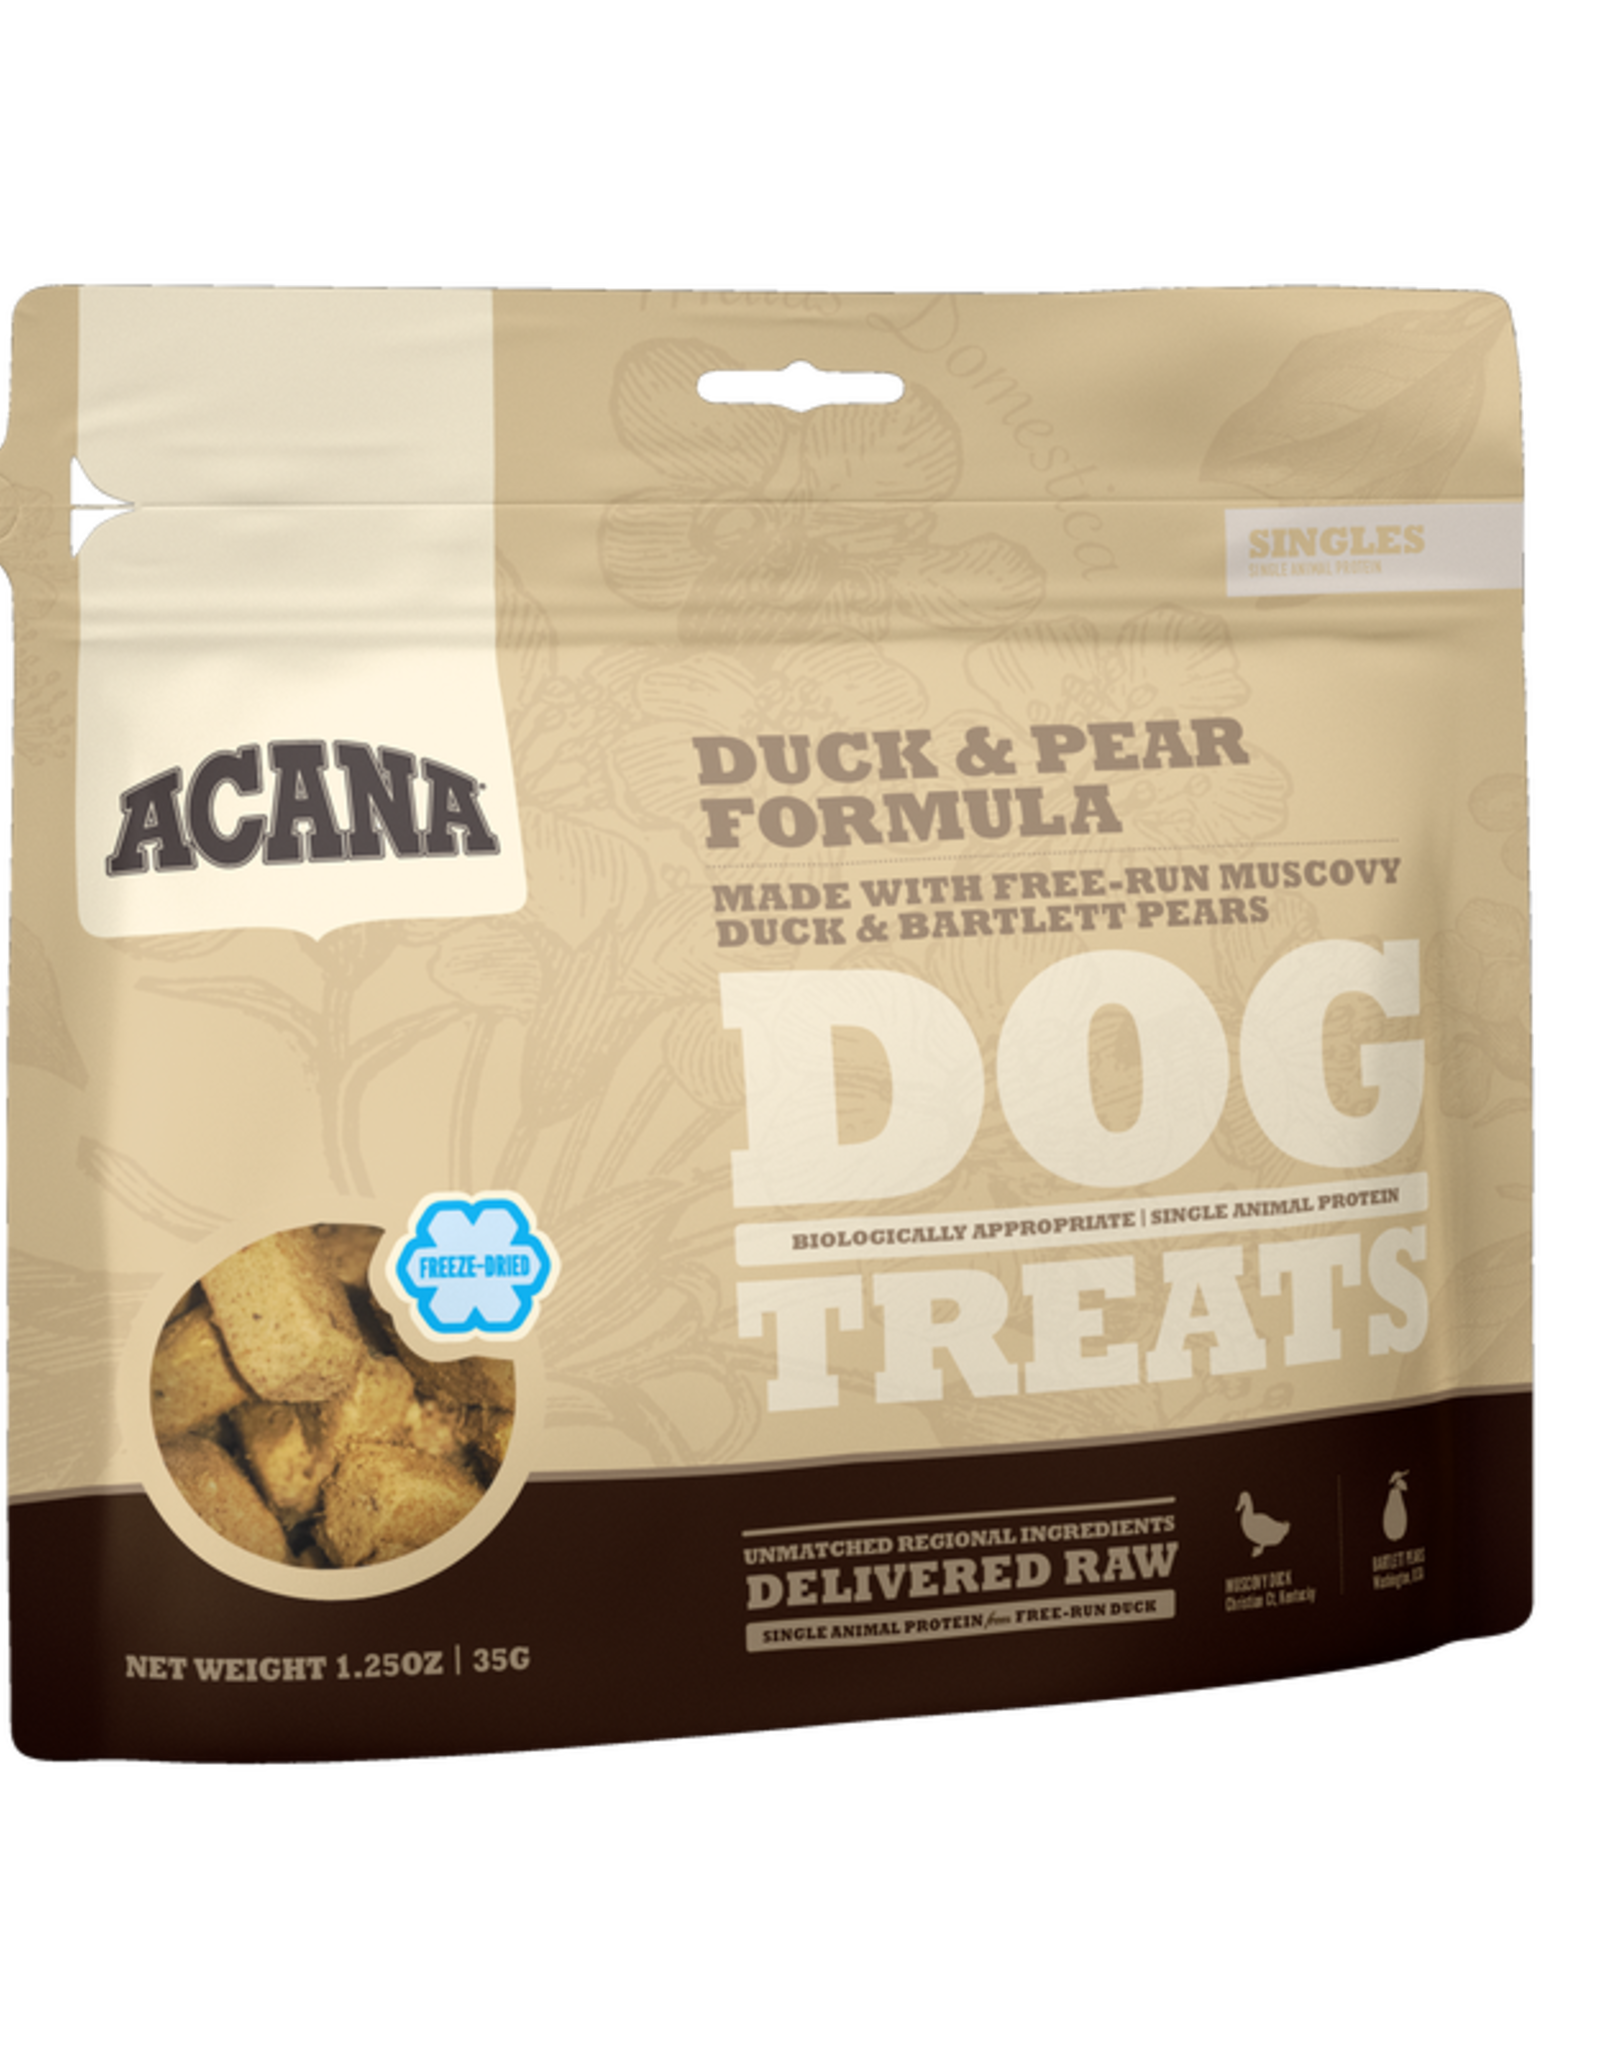 CHAMPION PET FOOD ACANA FREEZE DRIED DUCK & PEAR TREAT 1.25OZ